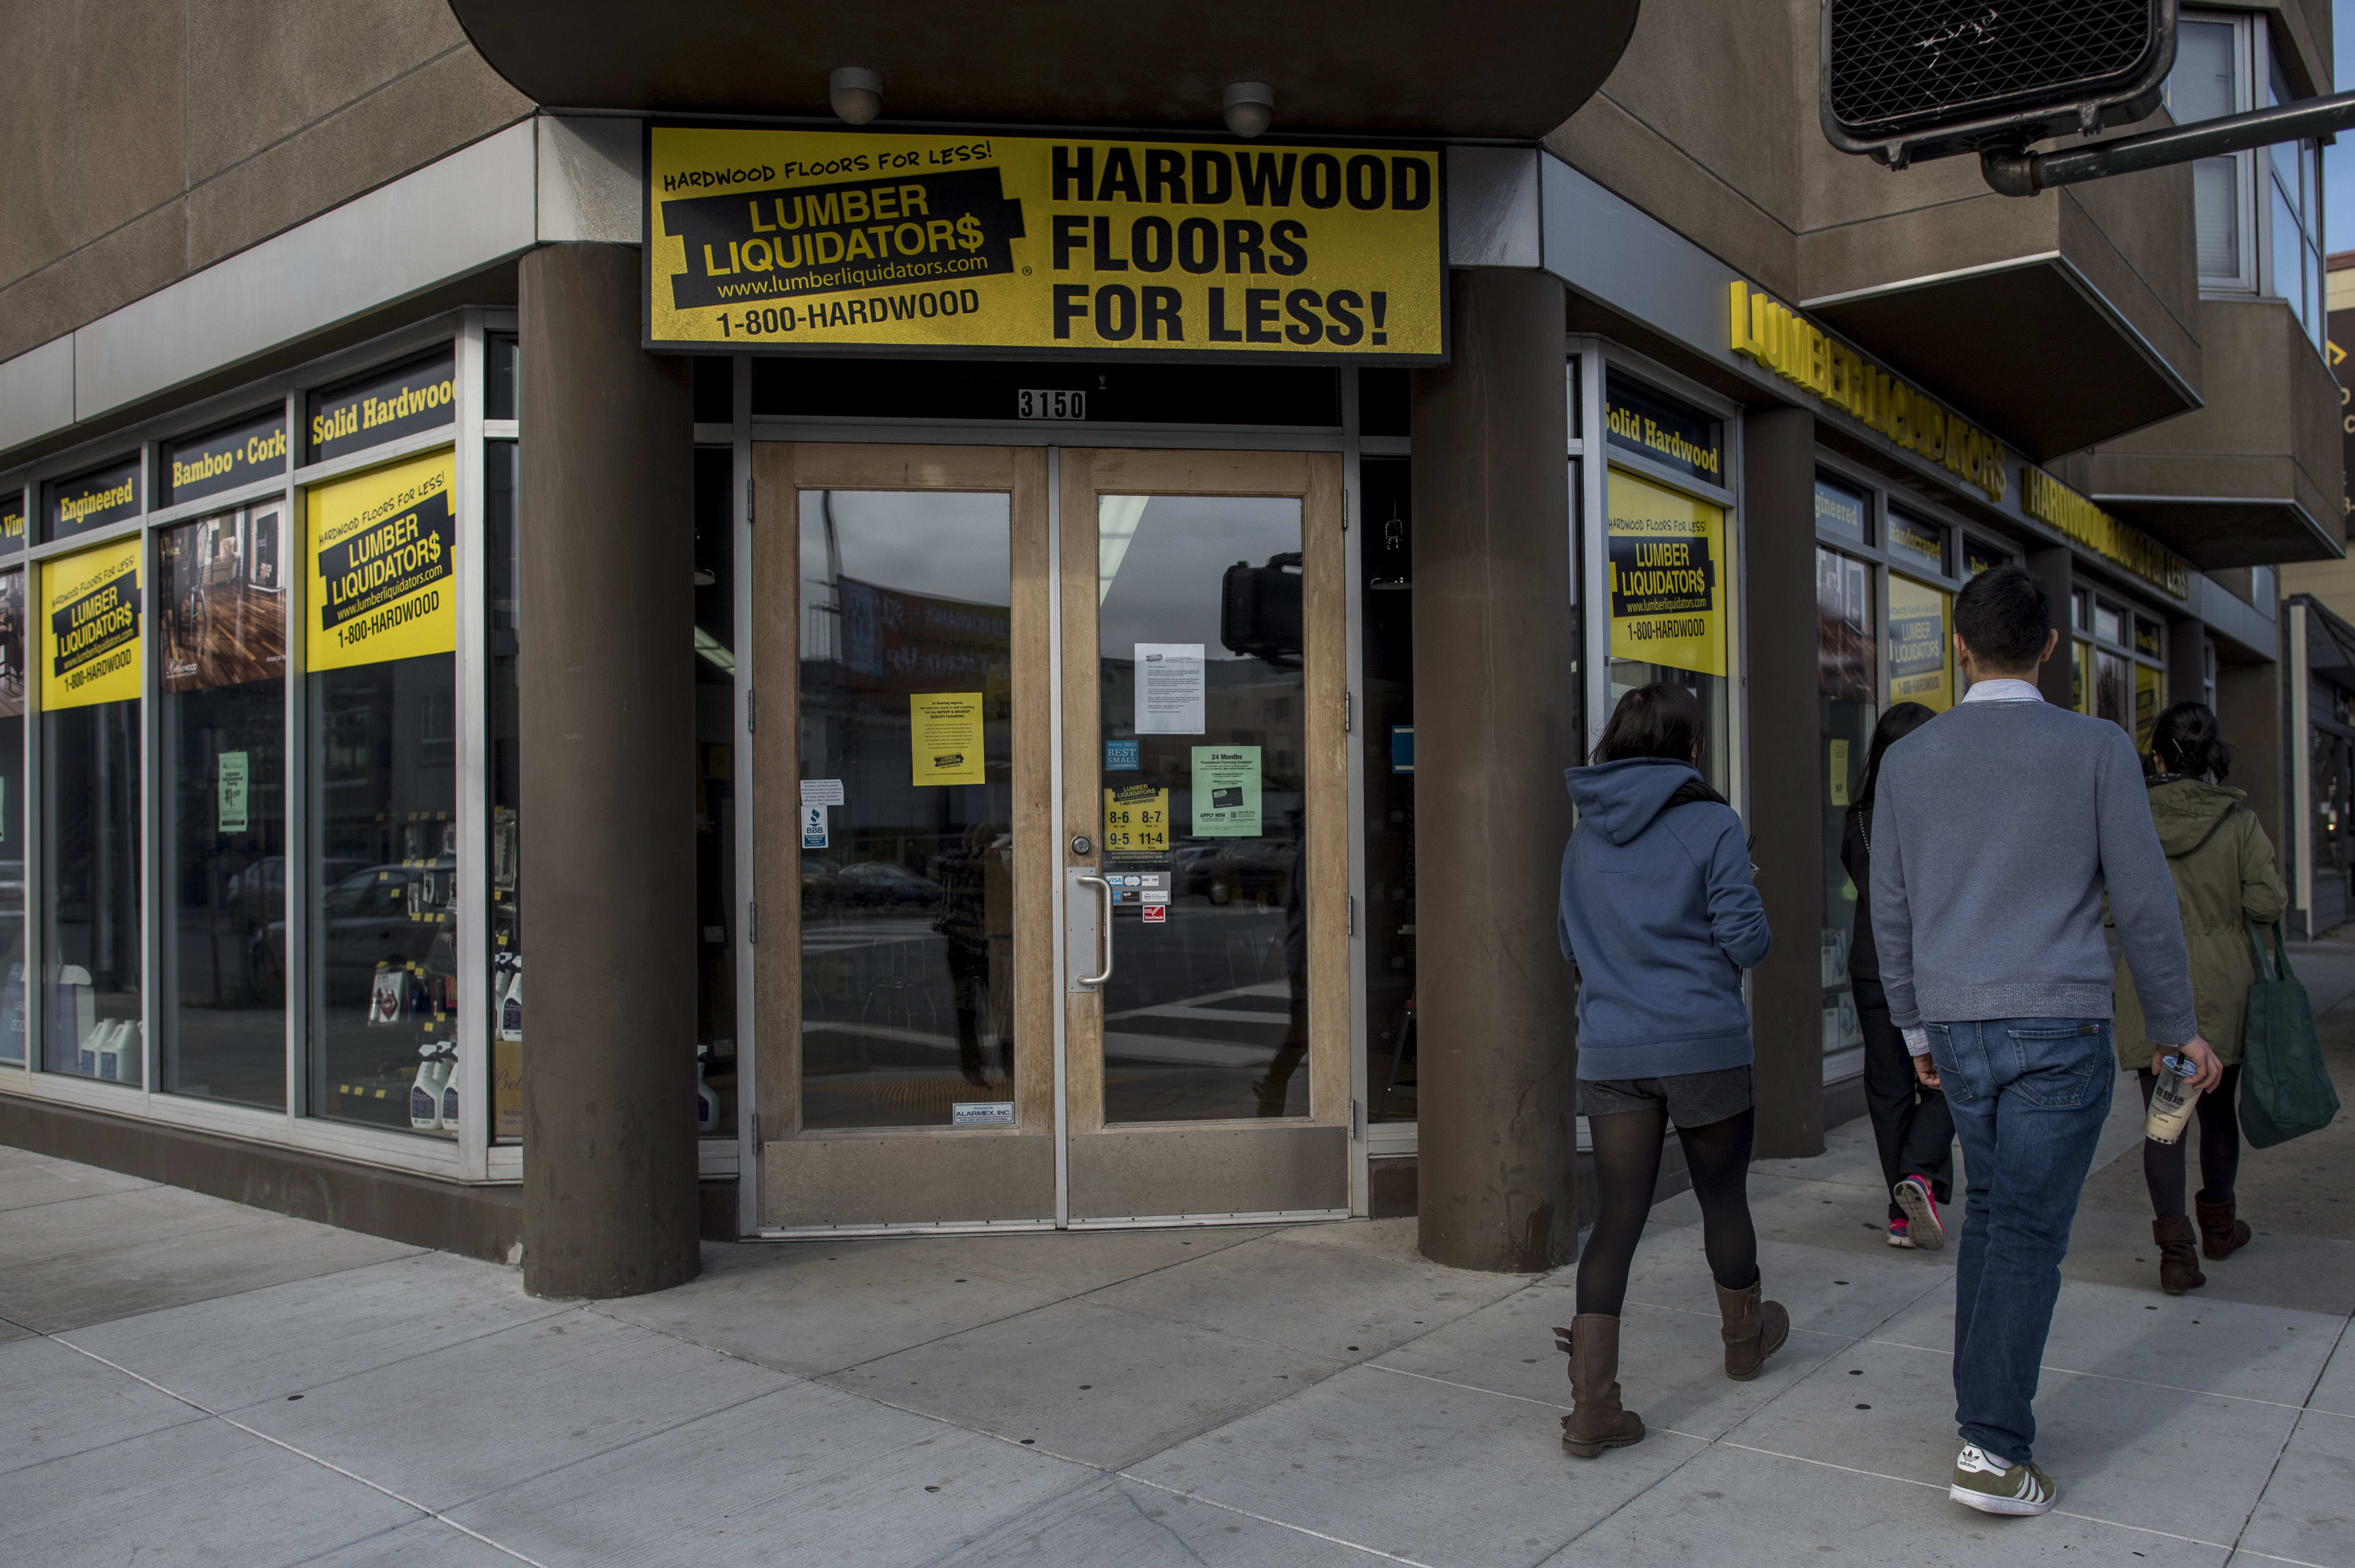 Lumber Liquidators stock tumbles after founder backs out of buyout bid